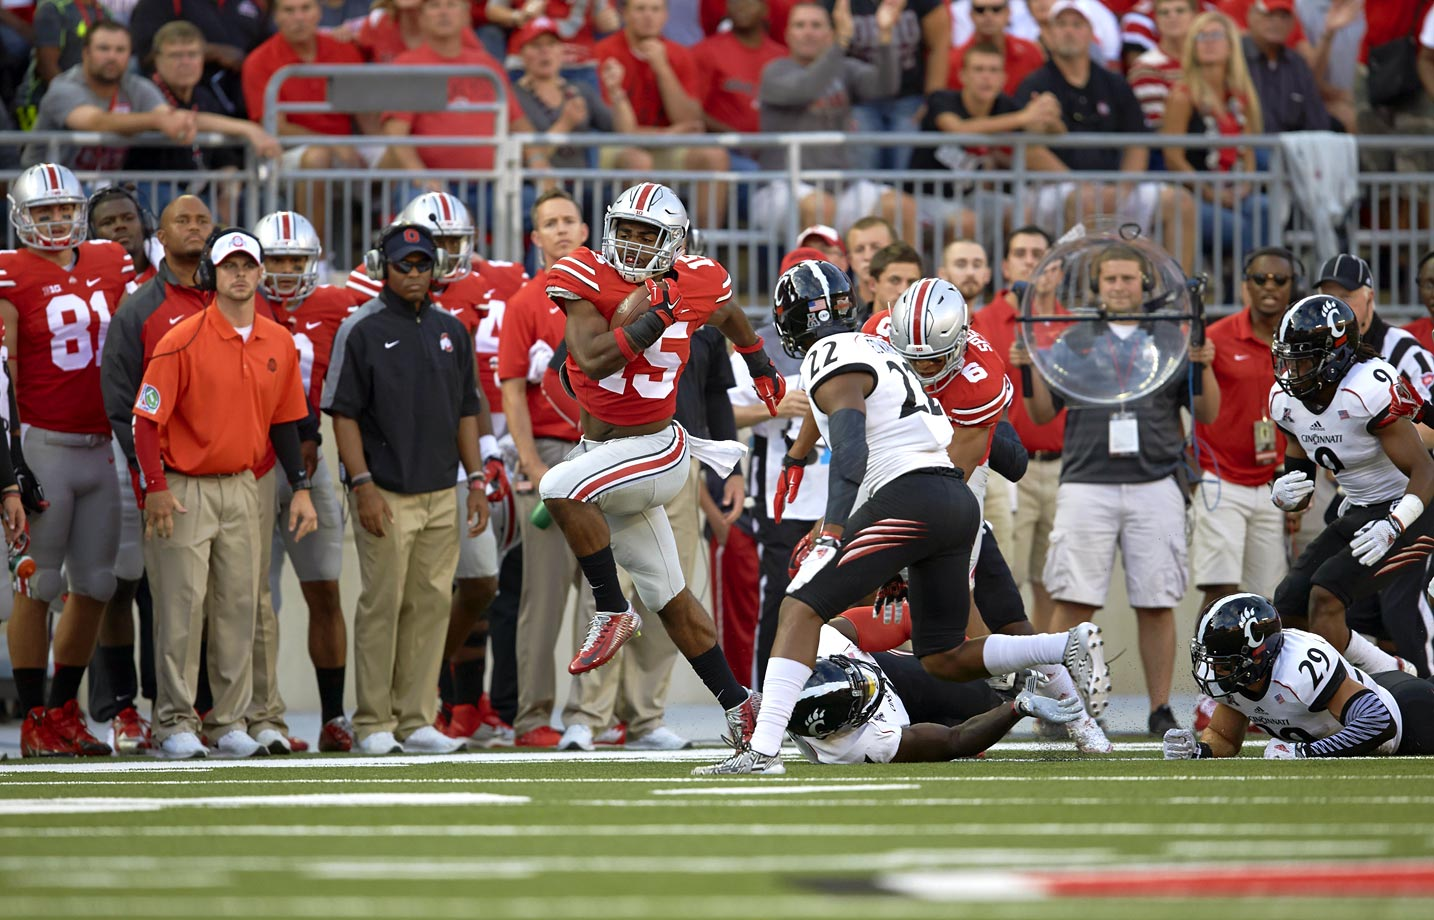 Cincinnati quarterback Gunner Kiel kept the Bearcats in it with 352 yards passing and four touchdowns, but the Buckeyes exploded for 710 yards of offense behind Barrett and running back Ezekiel Elliott.